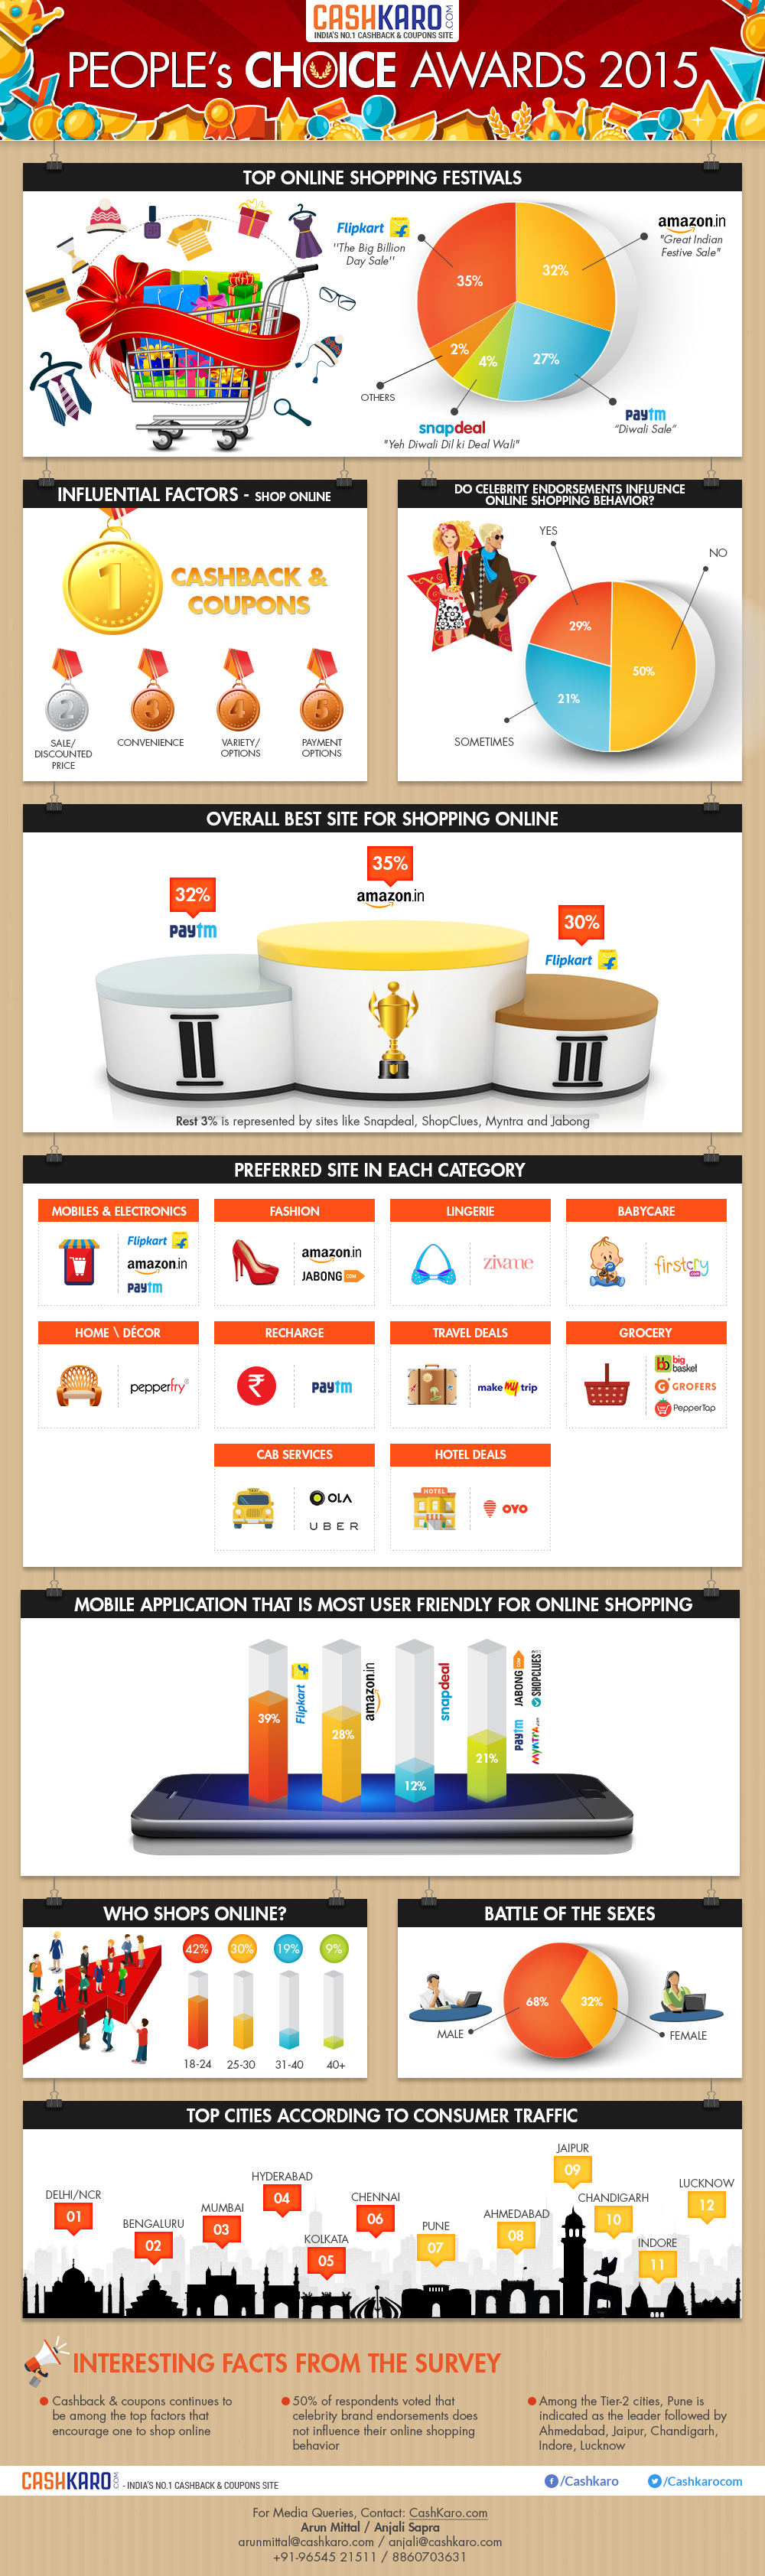 Infographic_CashKaro_Peoples Choice Awards 2015 (1)